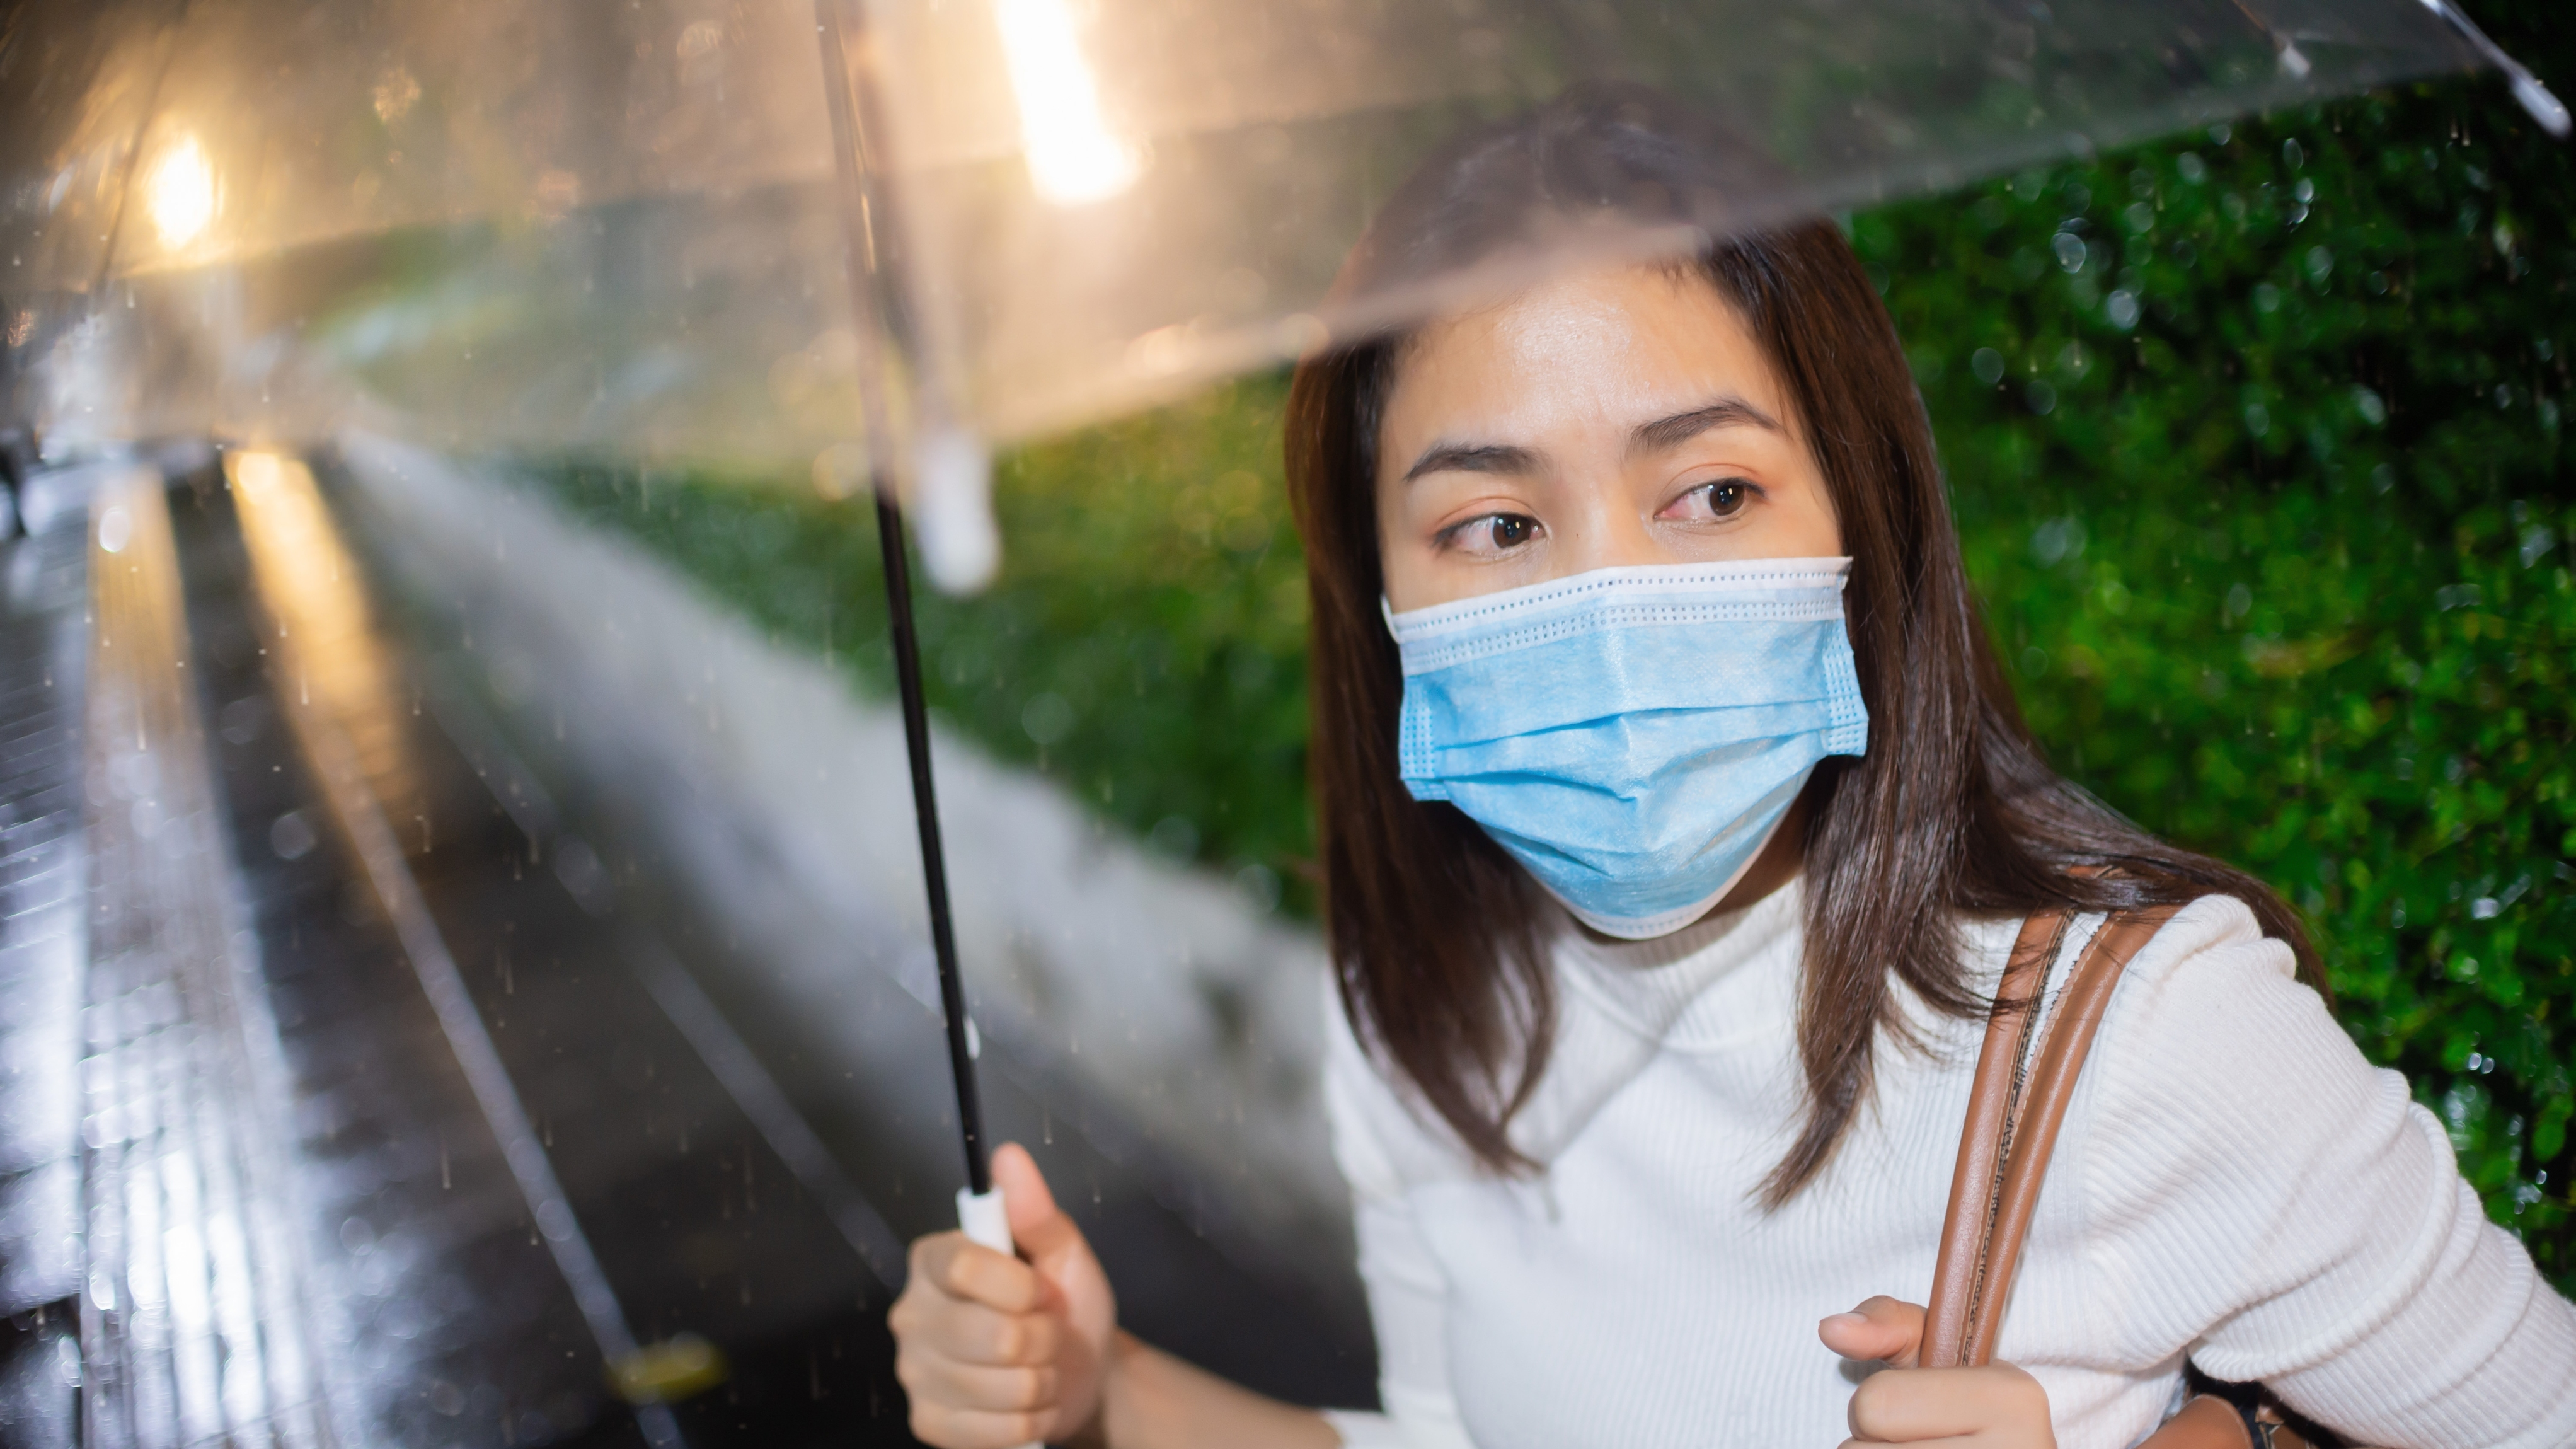 Coronavirus: How to take proper care of your mask in the rain